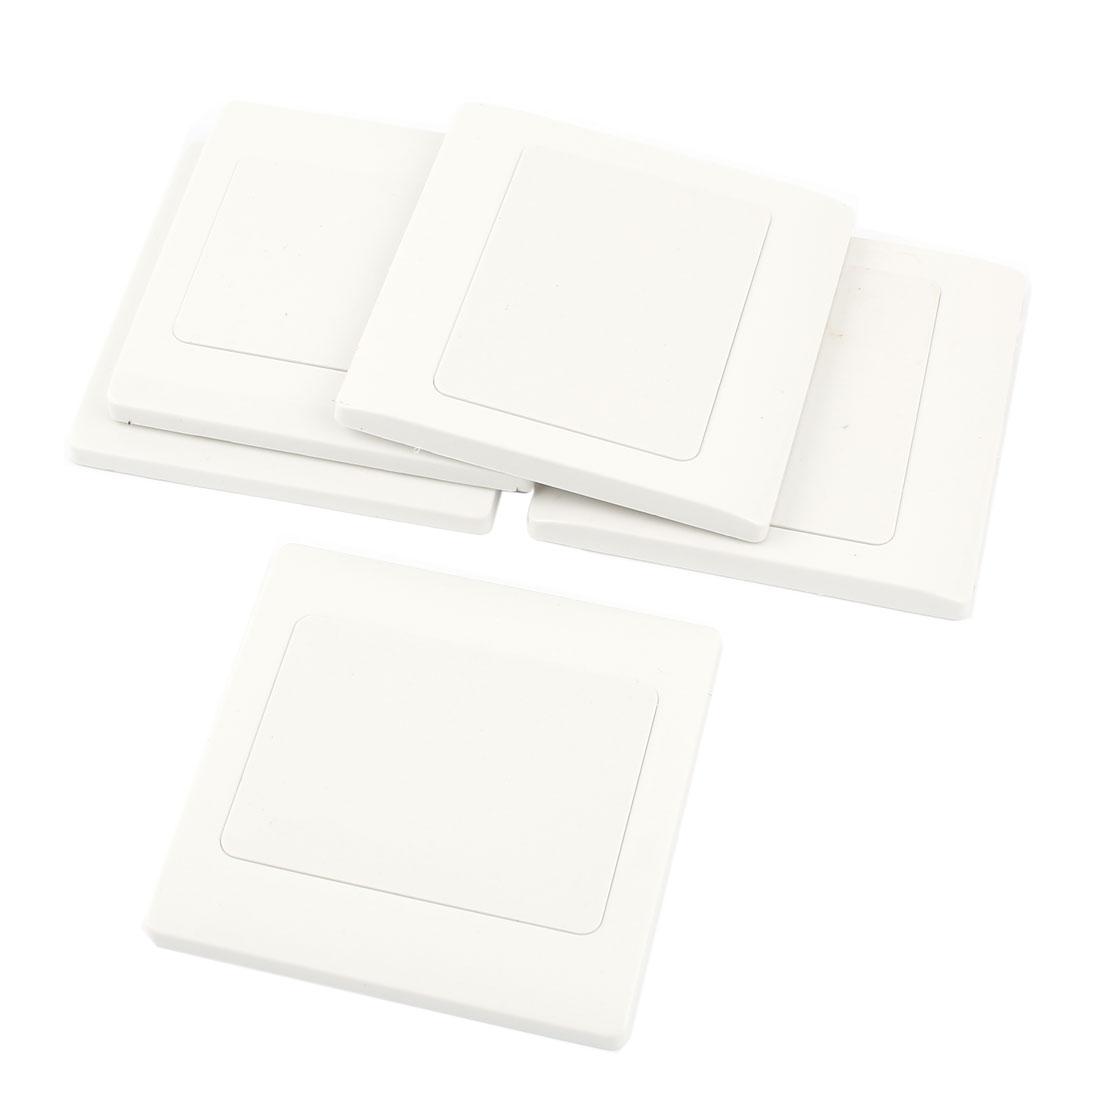 5 Pcs Home Office White Plastic Switch Socket Panel Blank Wall Plate 86x86mm